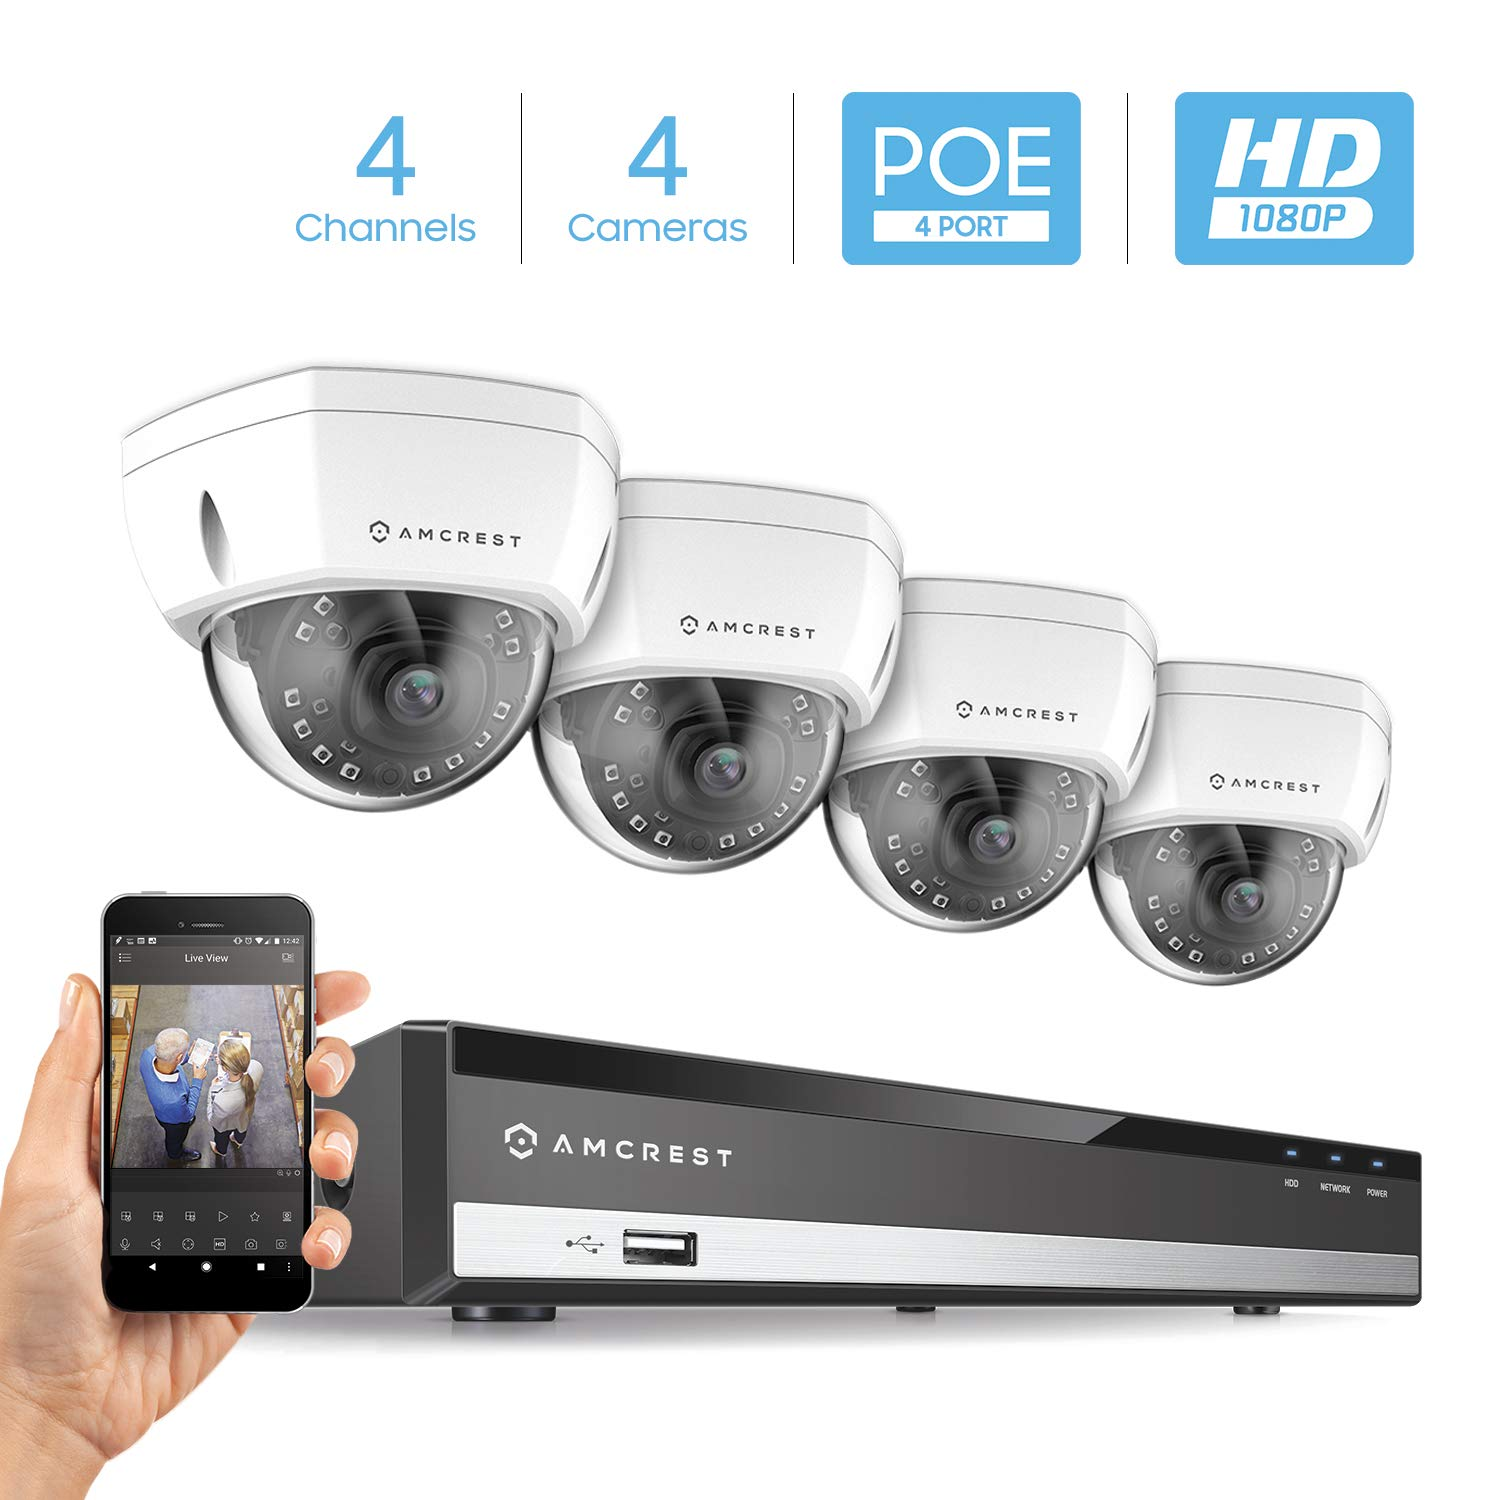 Amcrest 4CH Plug & Play H.265 6MP NVR 2MP 1080P Security Camera System, (4) x 2-Megapixel 3.6mm Wide Angle Lens Weatherproof Metal Dome PoE IP Cameras, 98 Feet Night Vision (White)